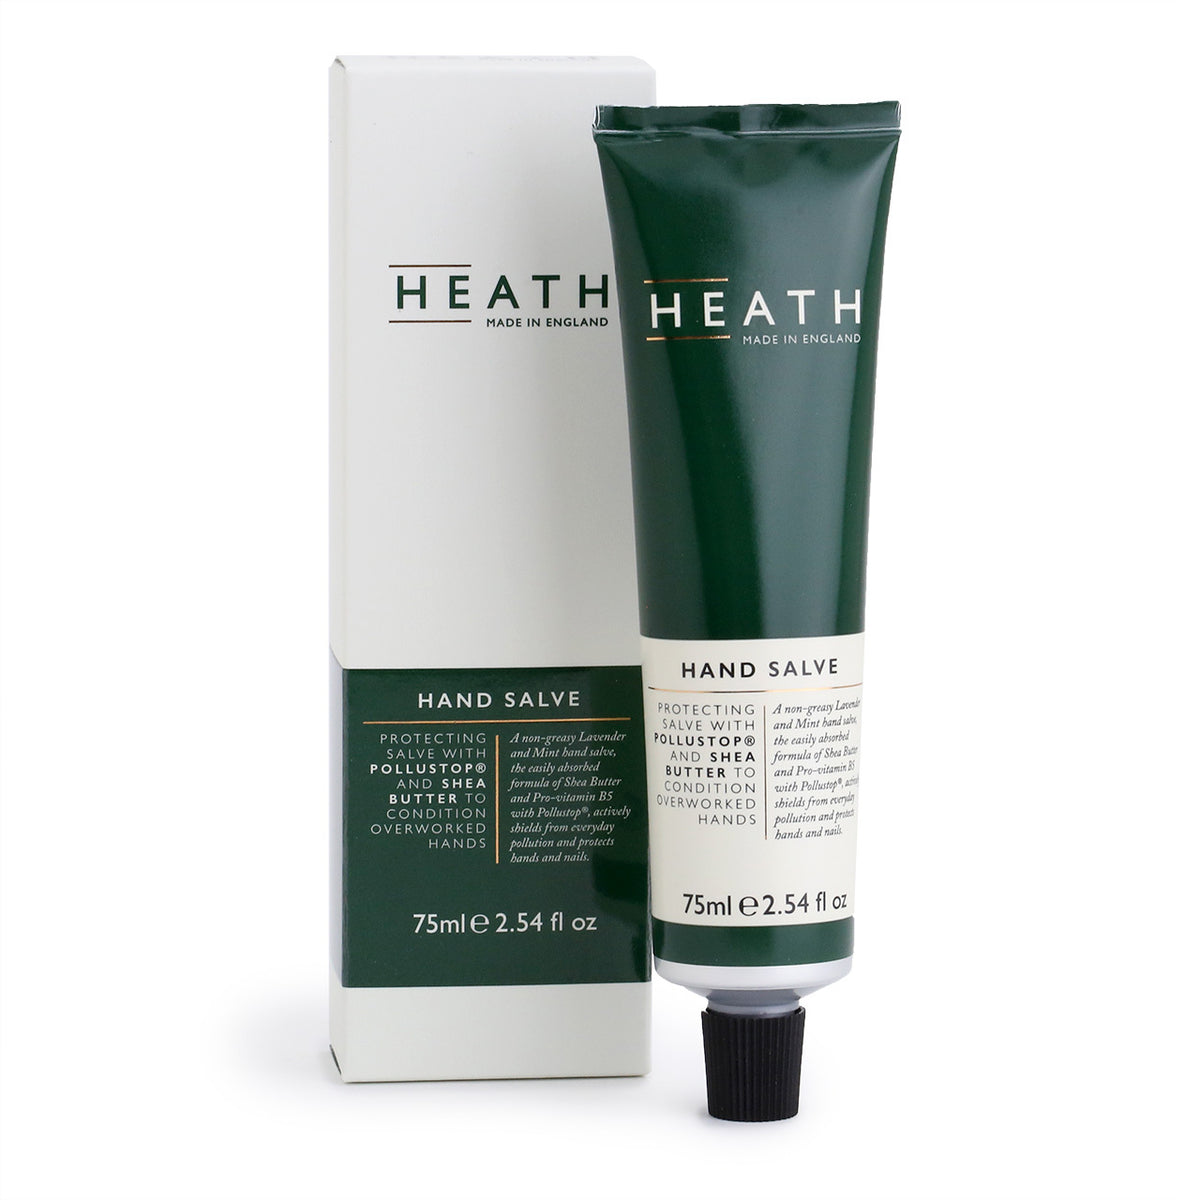 Heath - Hand Salve 75ml